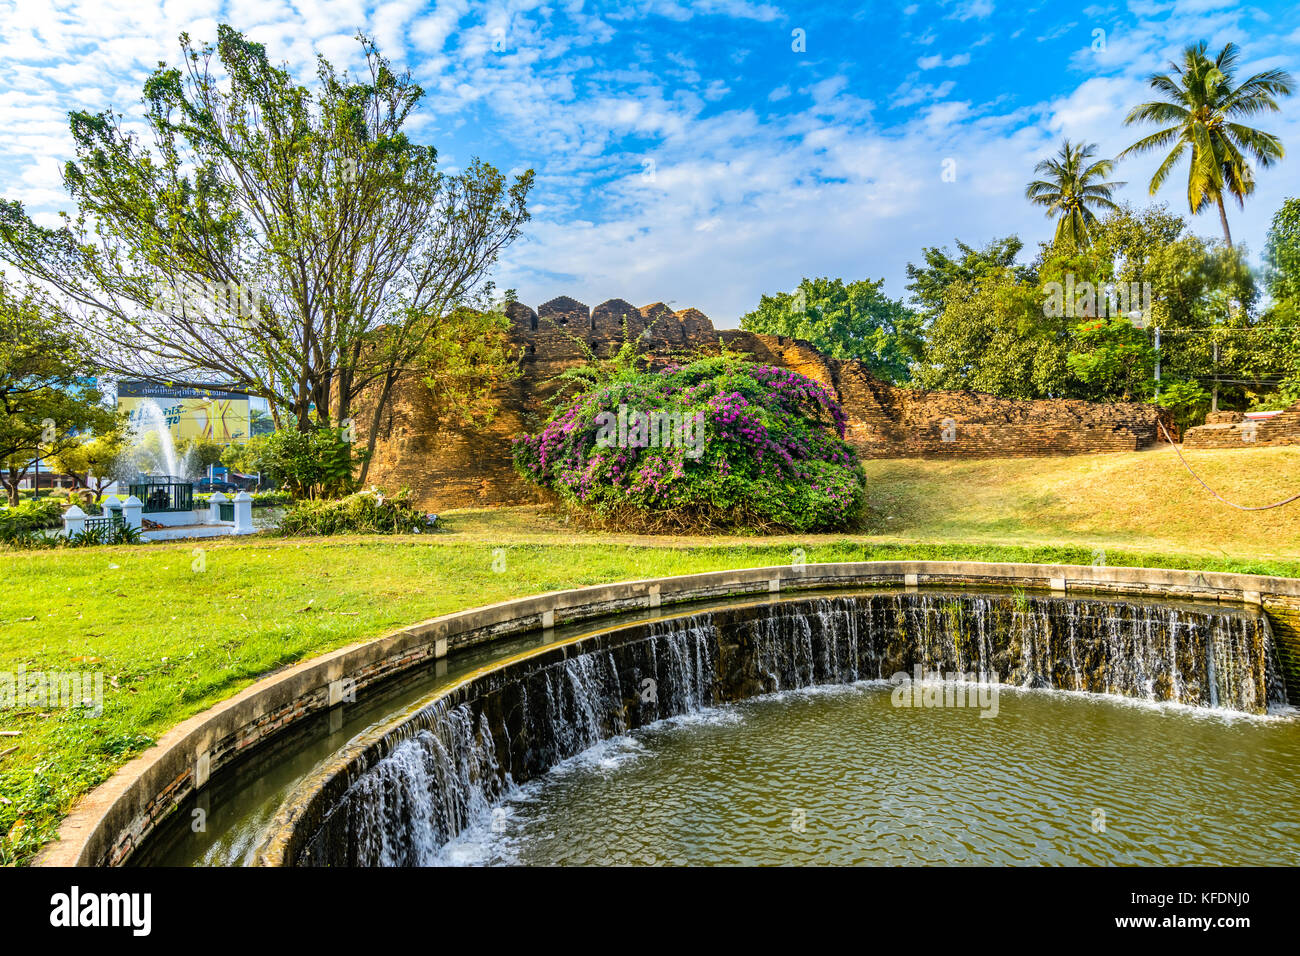 Part of the old city wall and moat at Ku Huang Corner, Chiang Mai, Thailand - Stock Image